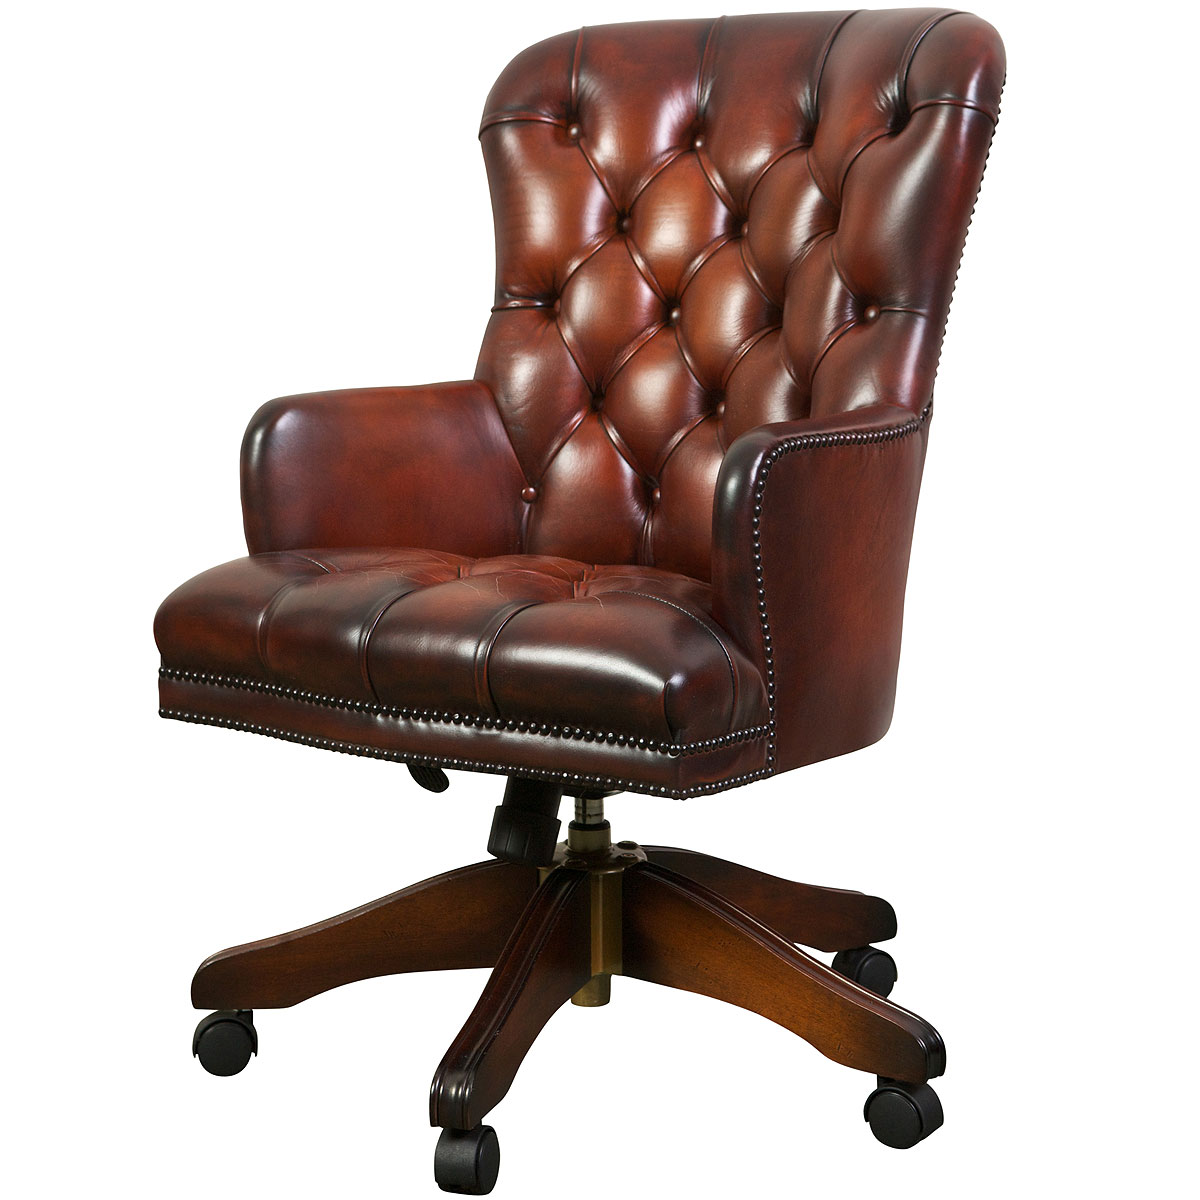 Queen Anne swivel chair Desk Chairs from Brights of Nettlebed